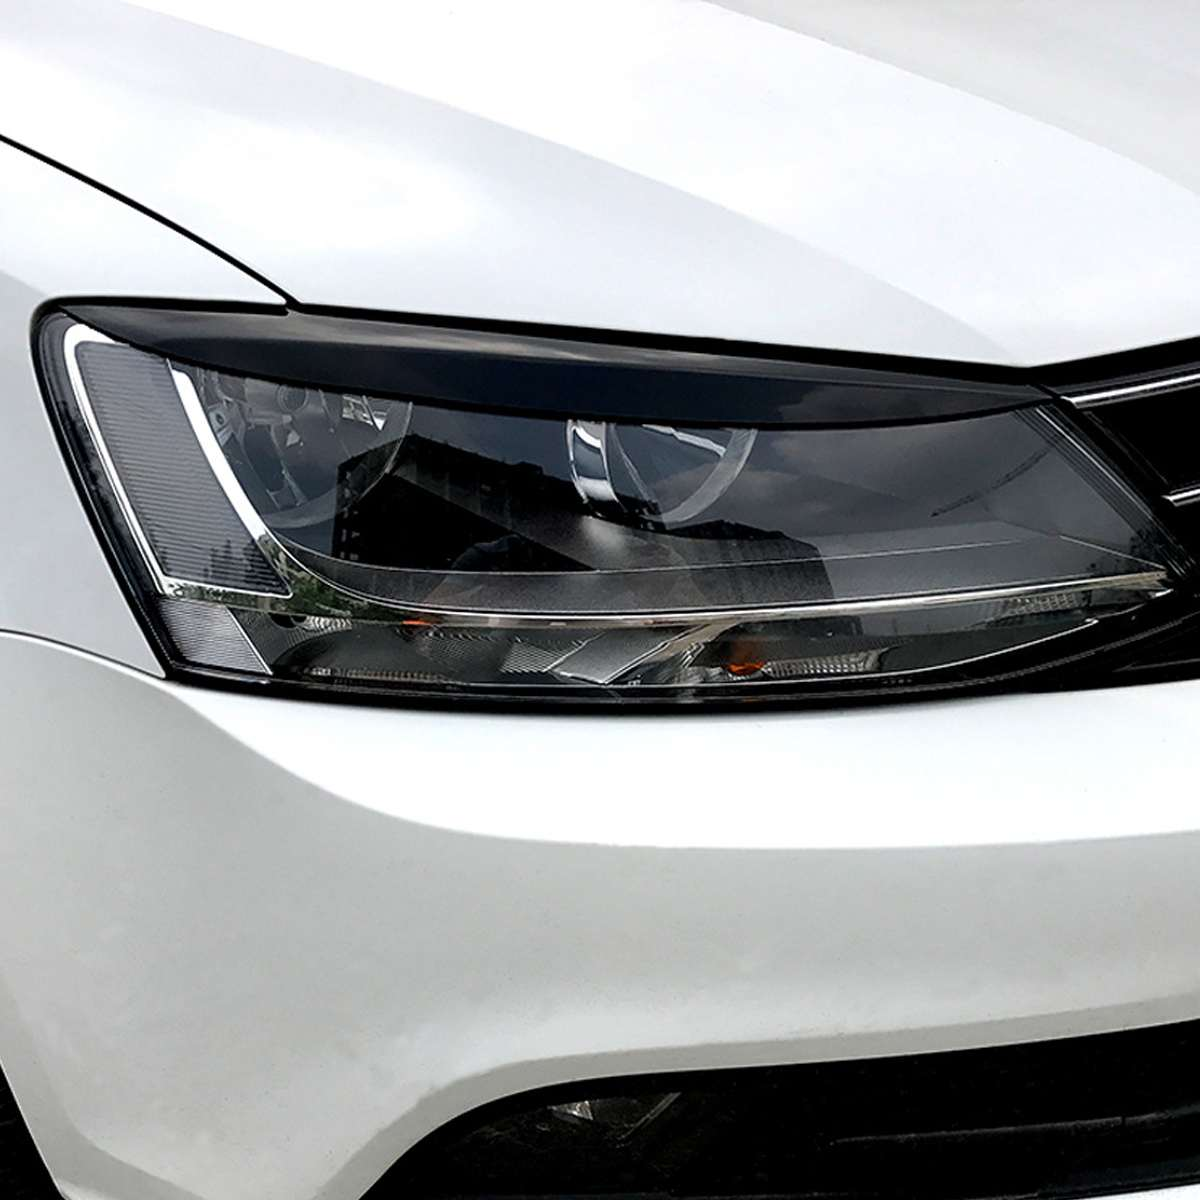 2 Pcs/lot Headlights Eyebrow Eyelids ABS Trim Cover For Volkswagen For VW For Jetta MK6 Sagitar NCS 2010 2011-2018 Car Styling